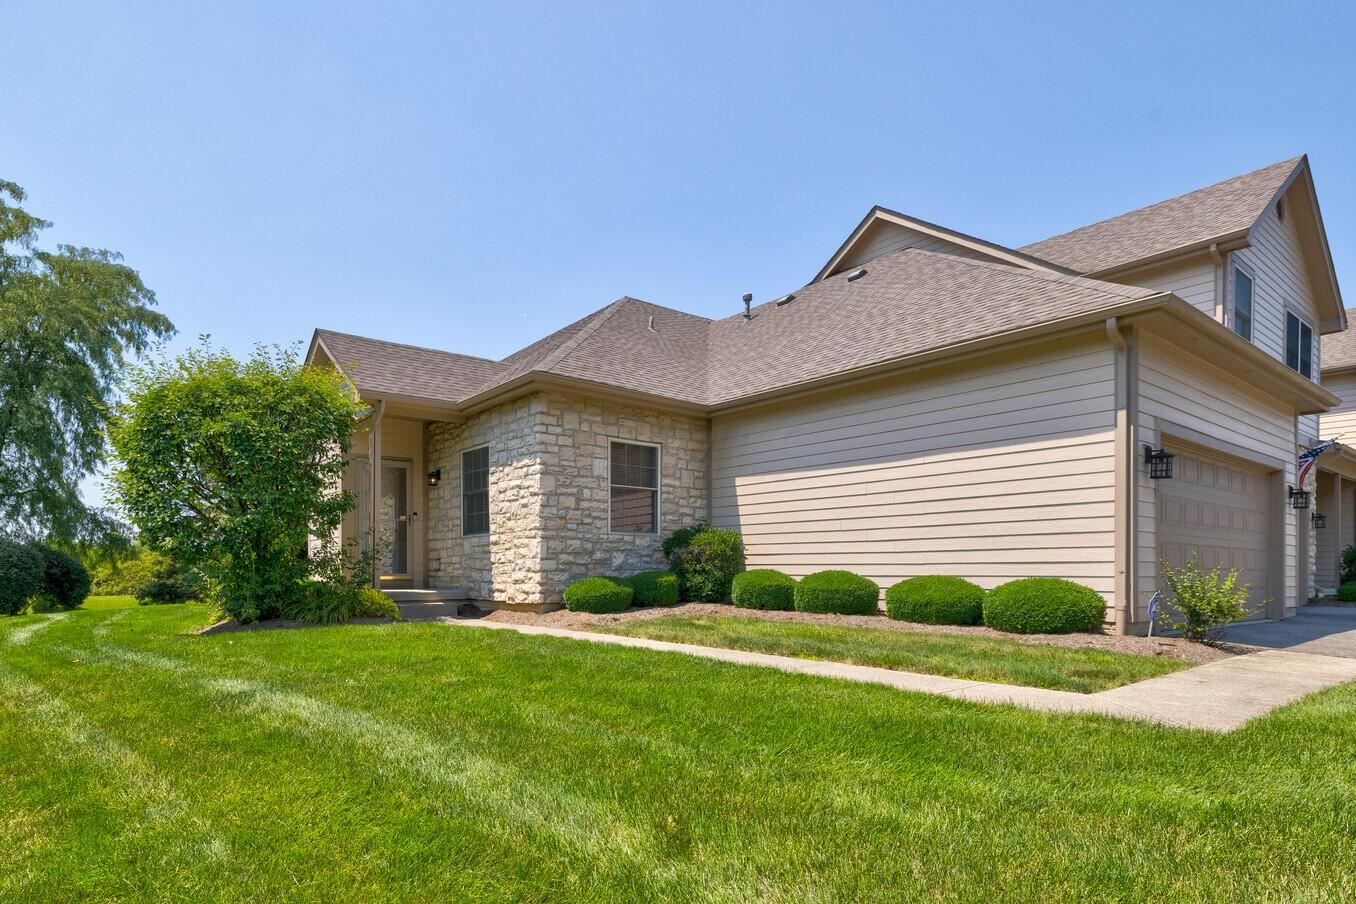 Photo of 5201 Double Eagle Drive, Westerville, OH 43081 (MLS # 221028606)